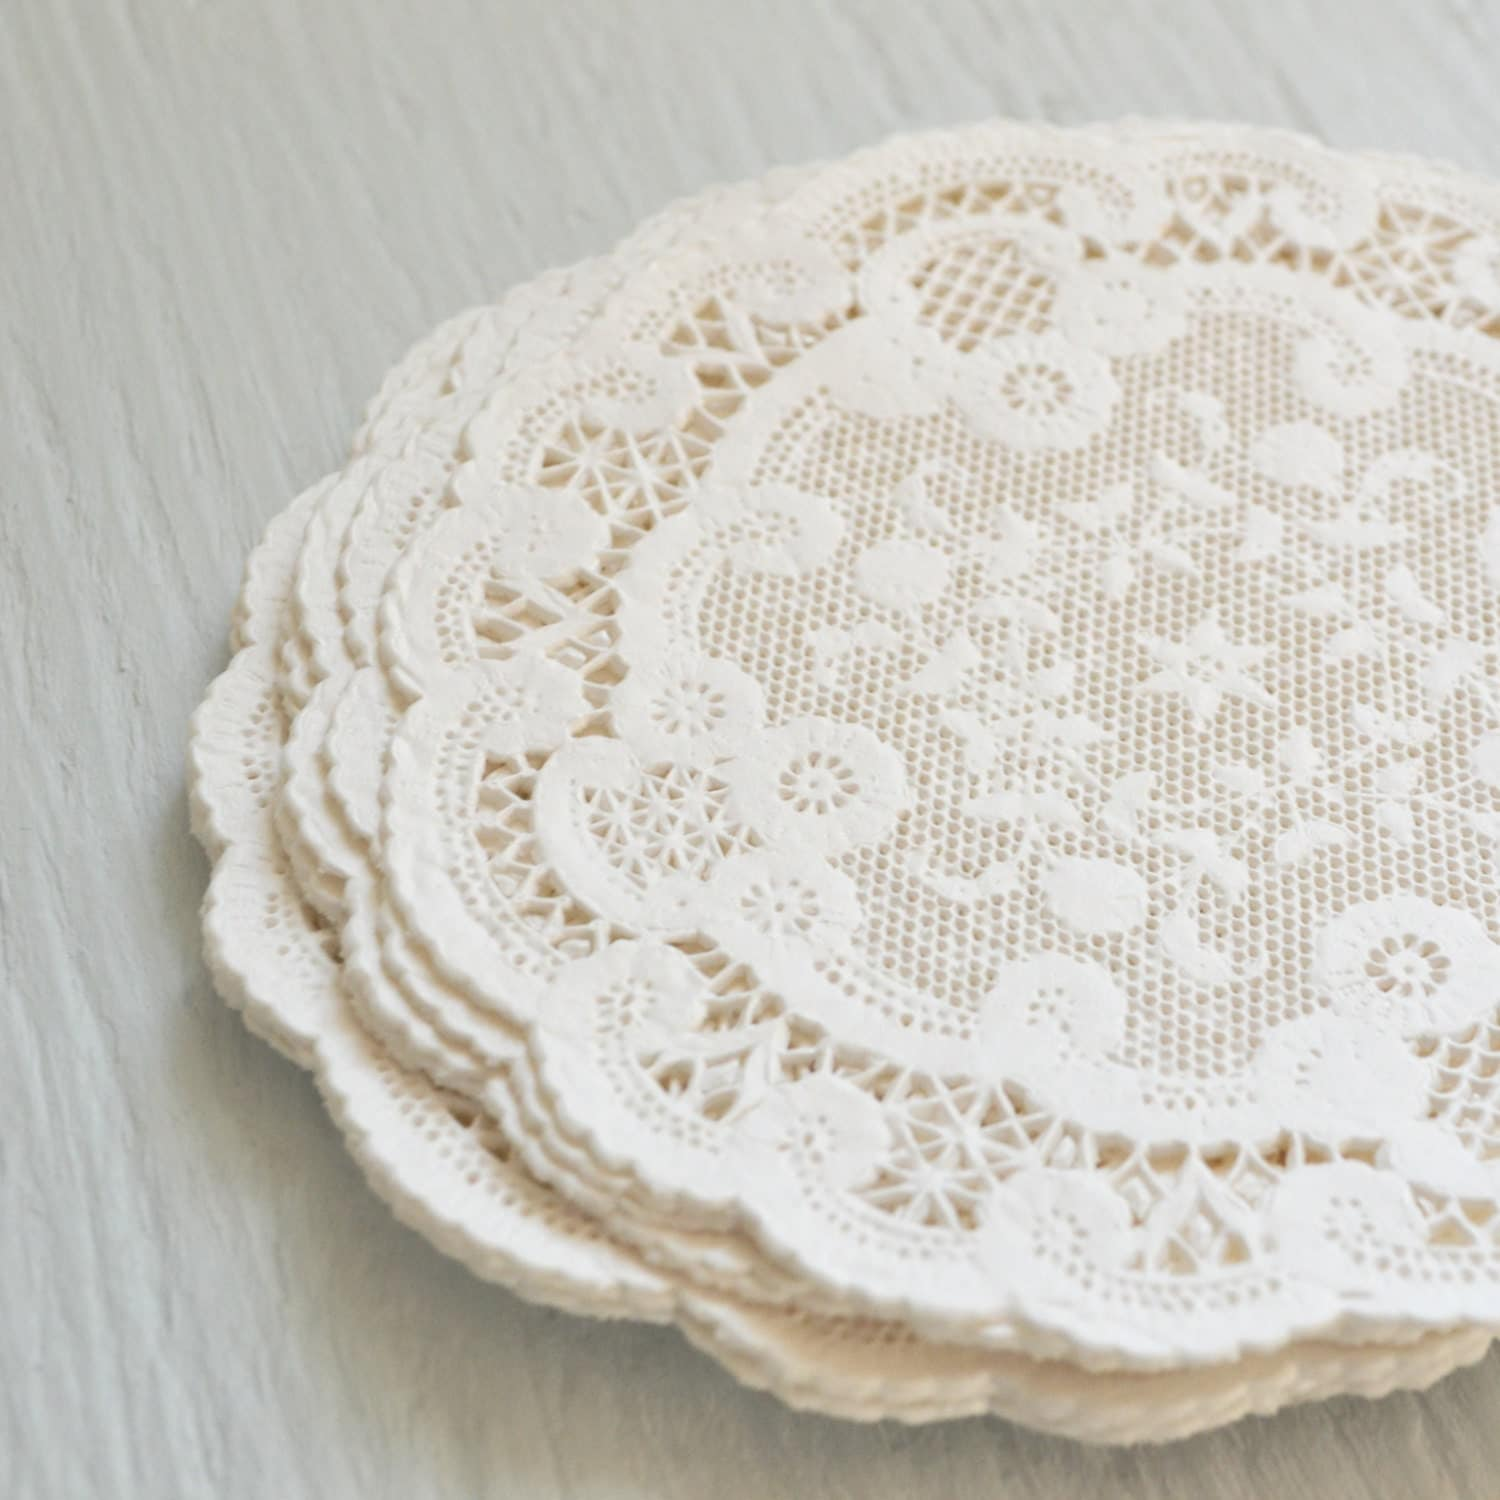 lace paper doilies 4 inches 15 % discount flat rate doily crafts